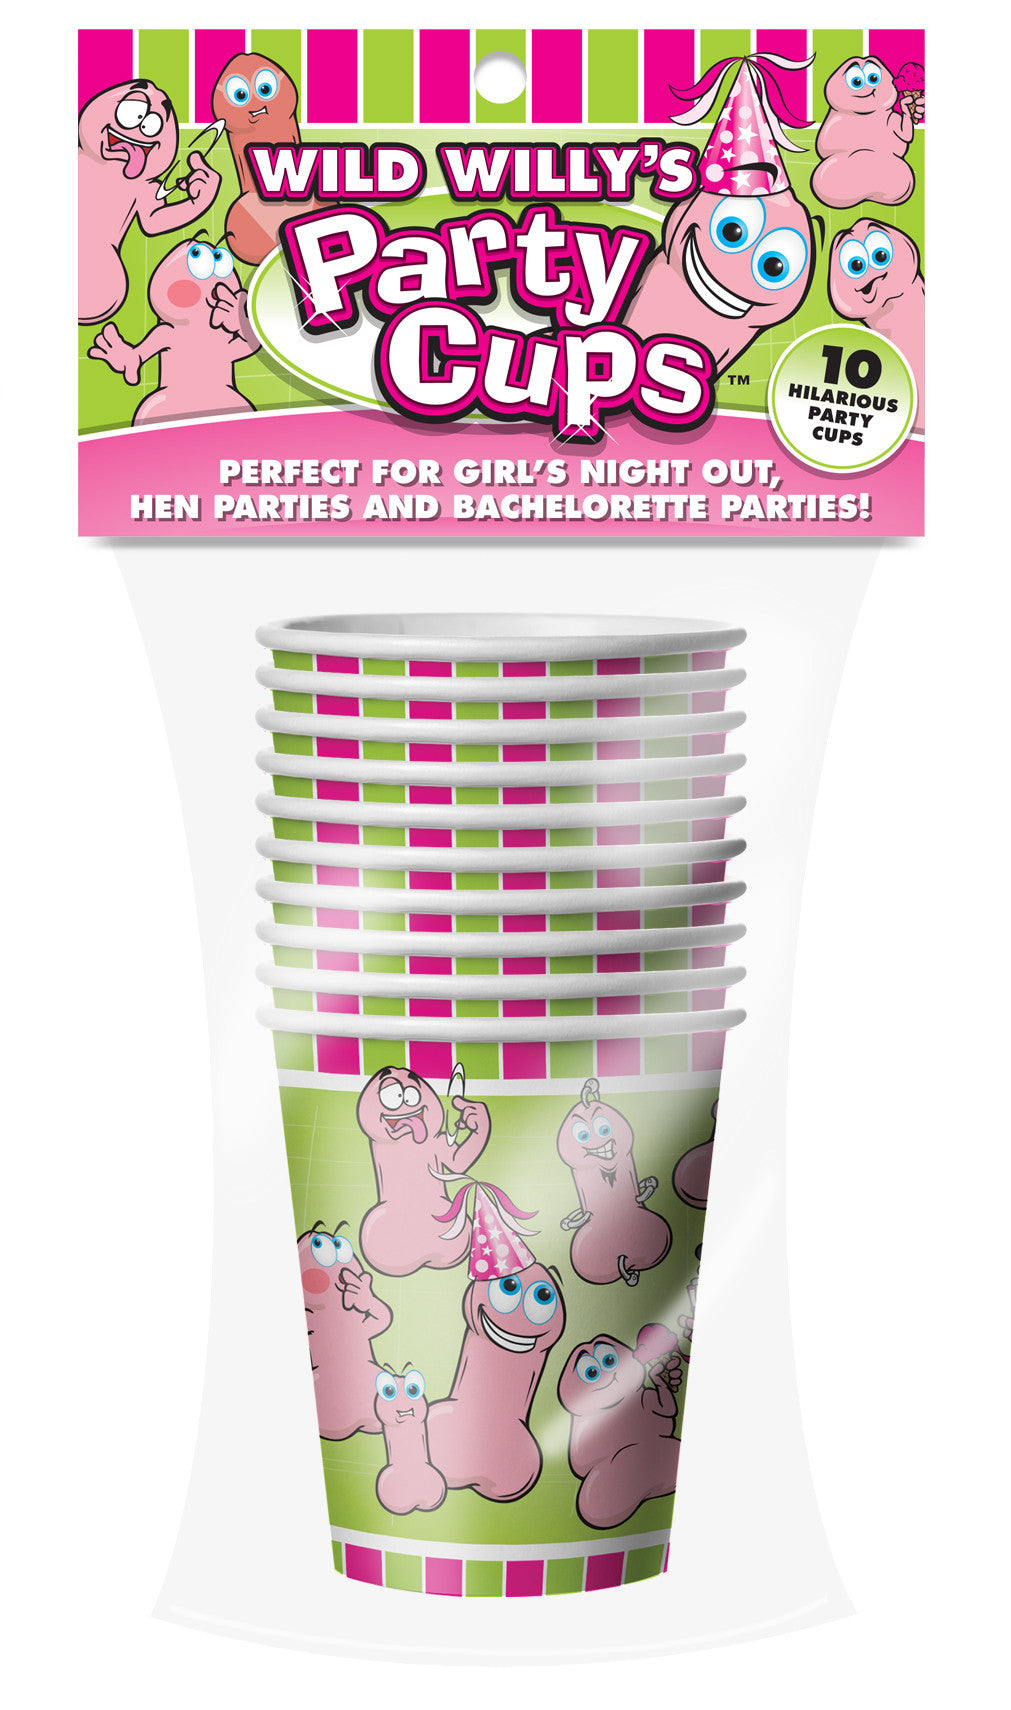 WILD WILLYS PARTY CUPS - Sex Toy Factory - Ball and Chain - 1